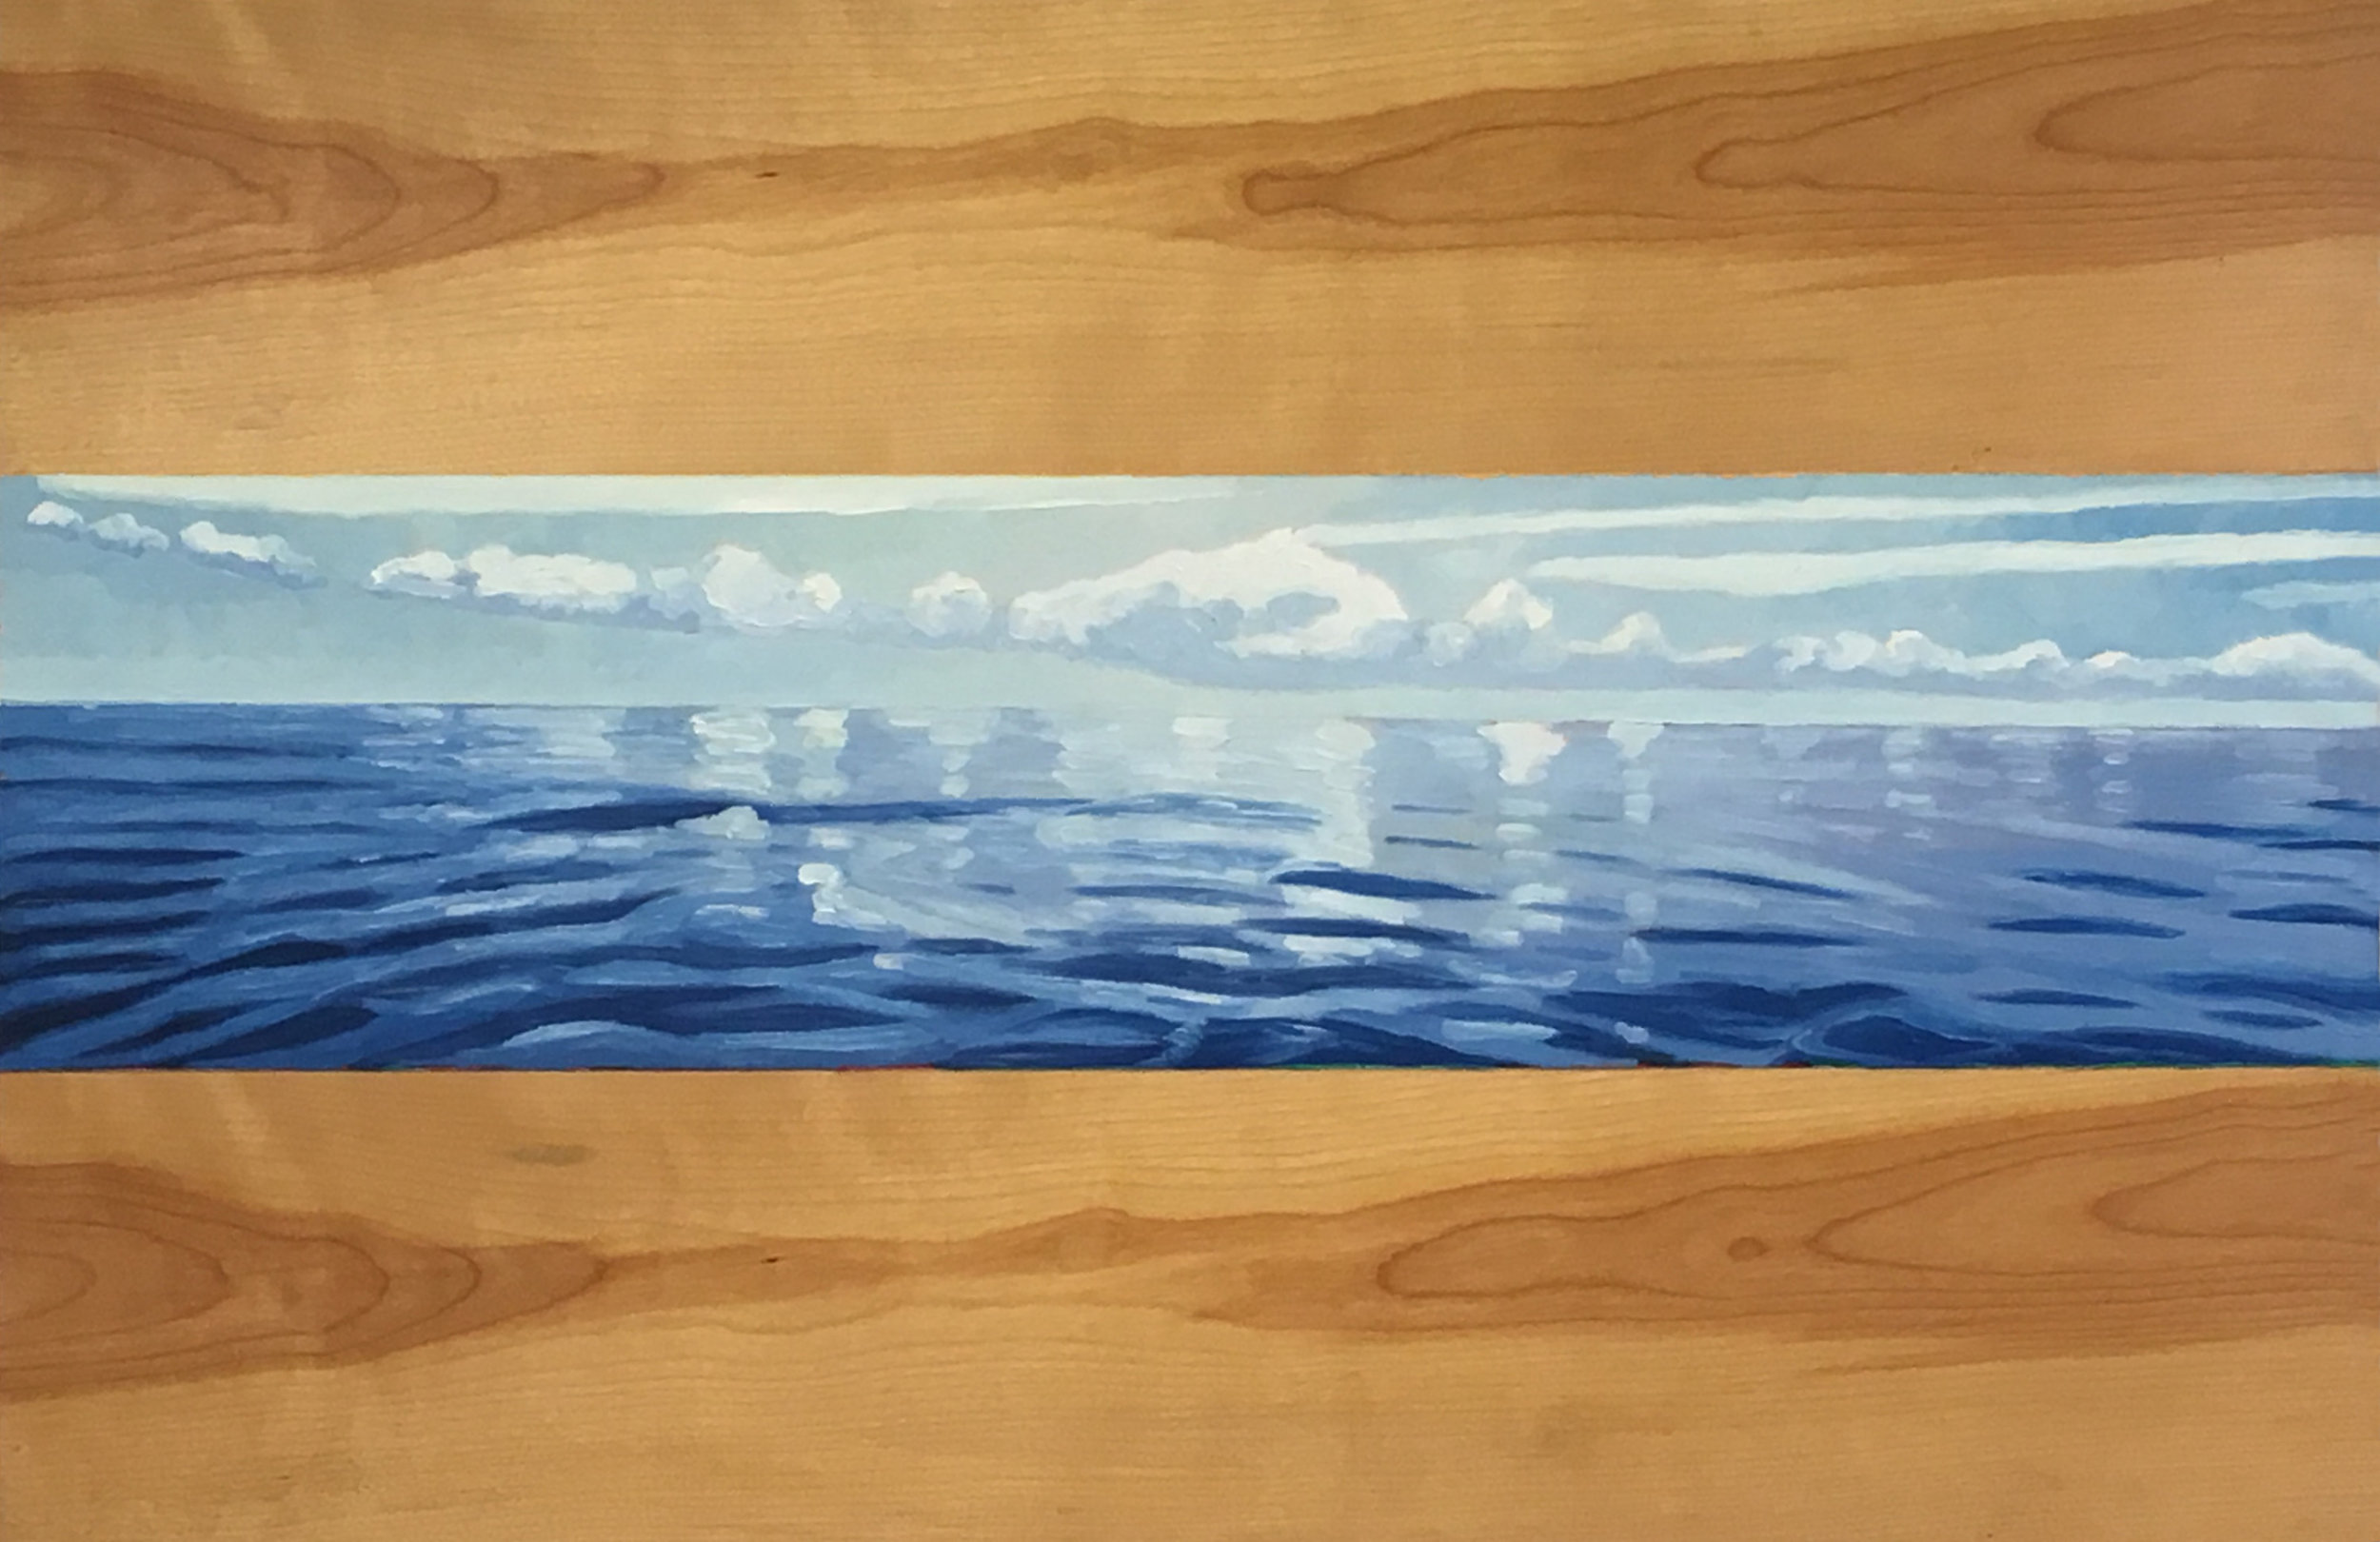 Reflections  9x36  Oil on Canvas  2000